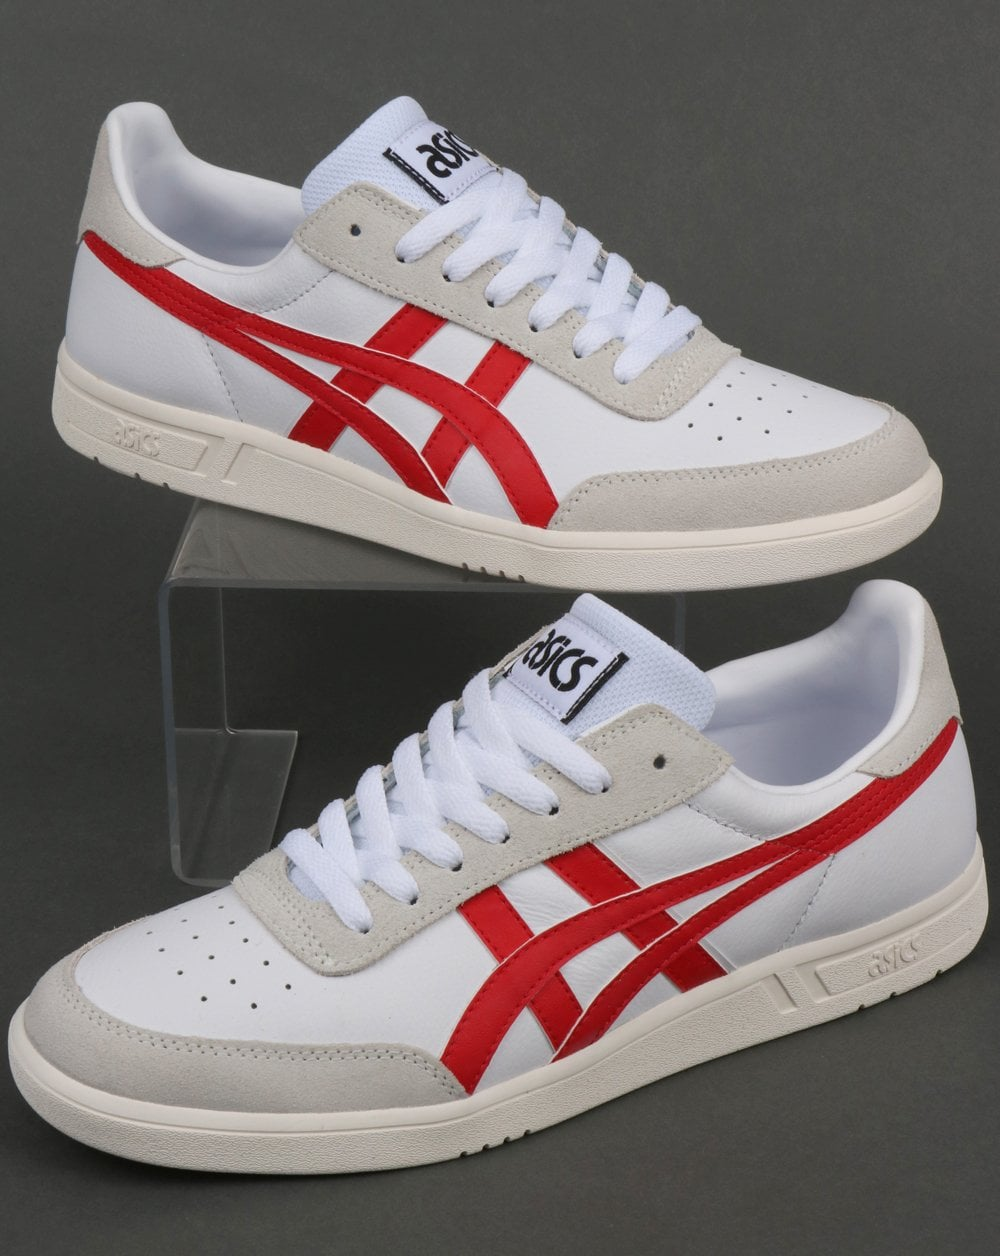 los angeles 5c656 3a72d Asics Gel-Vickka TRS Trainers White/Red